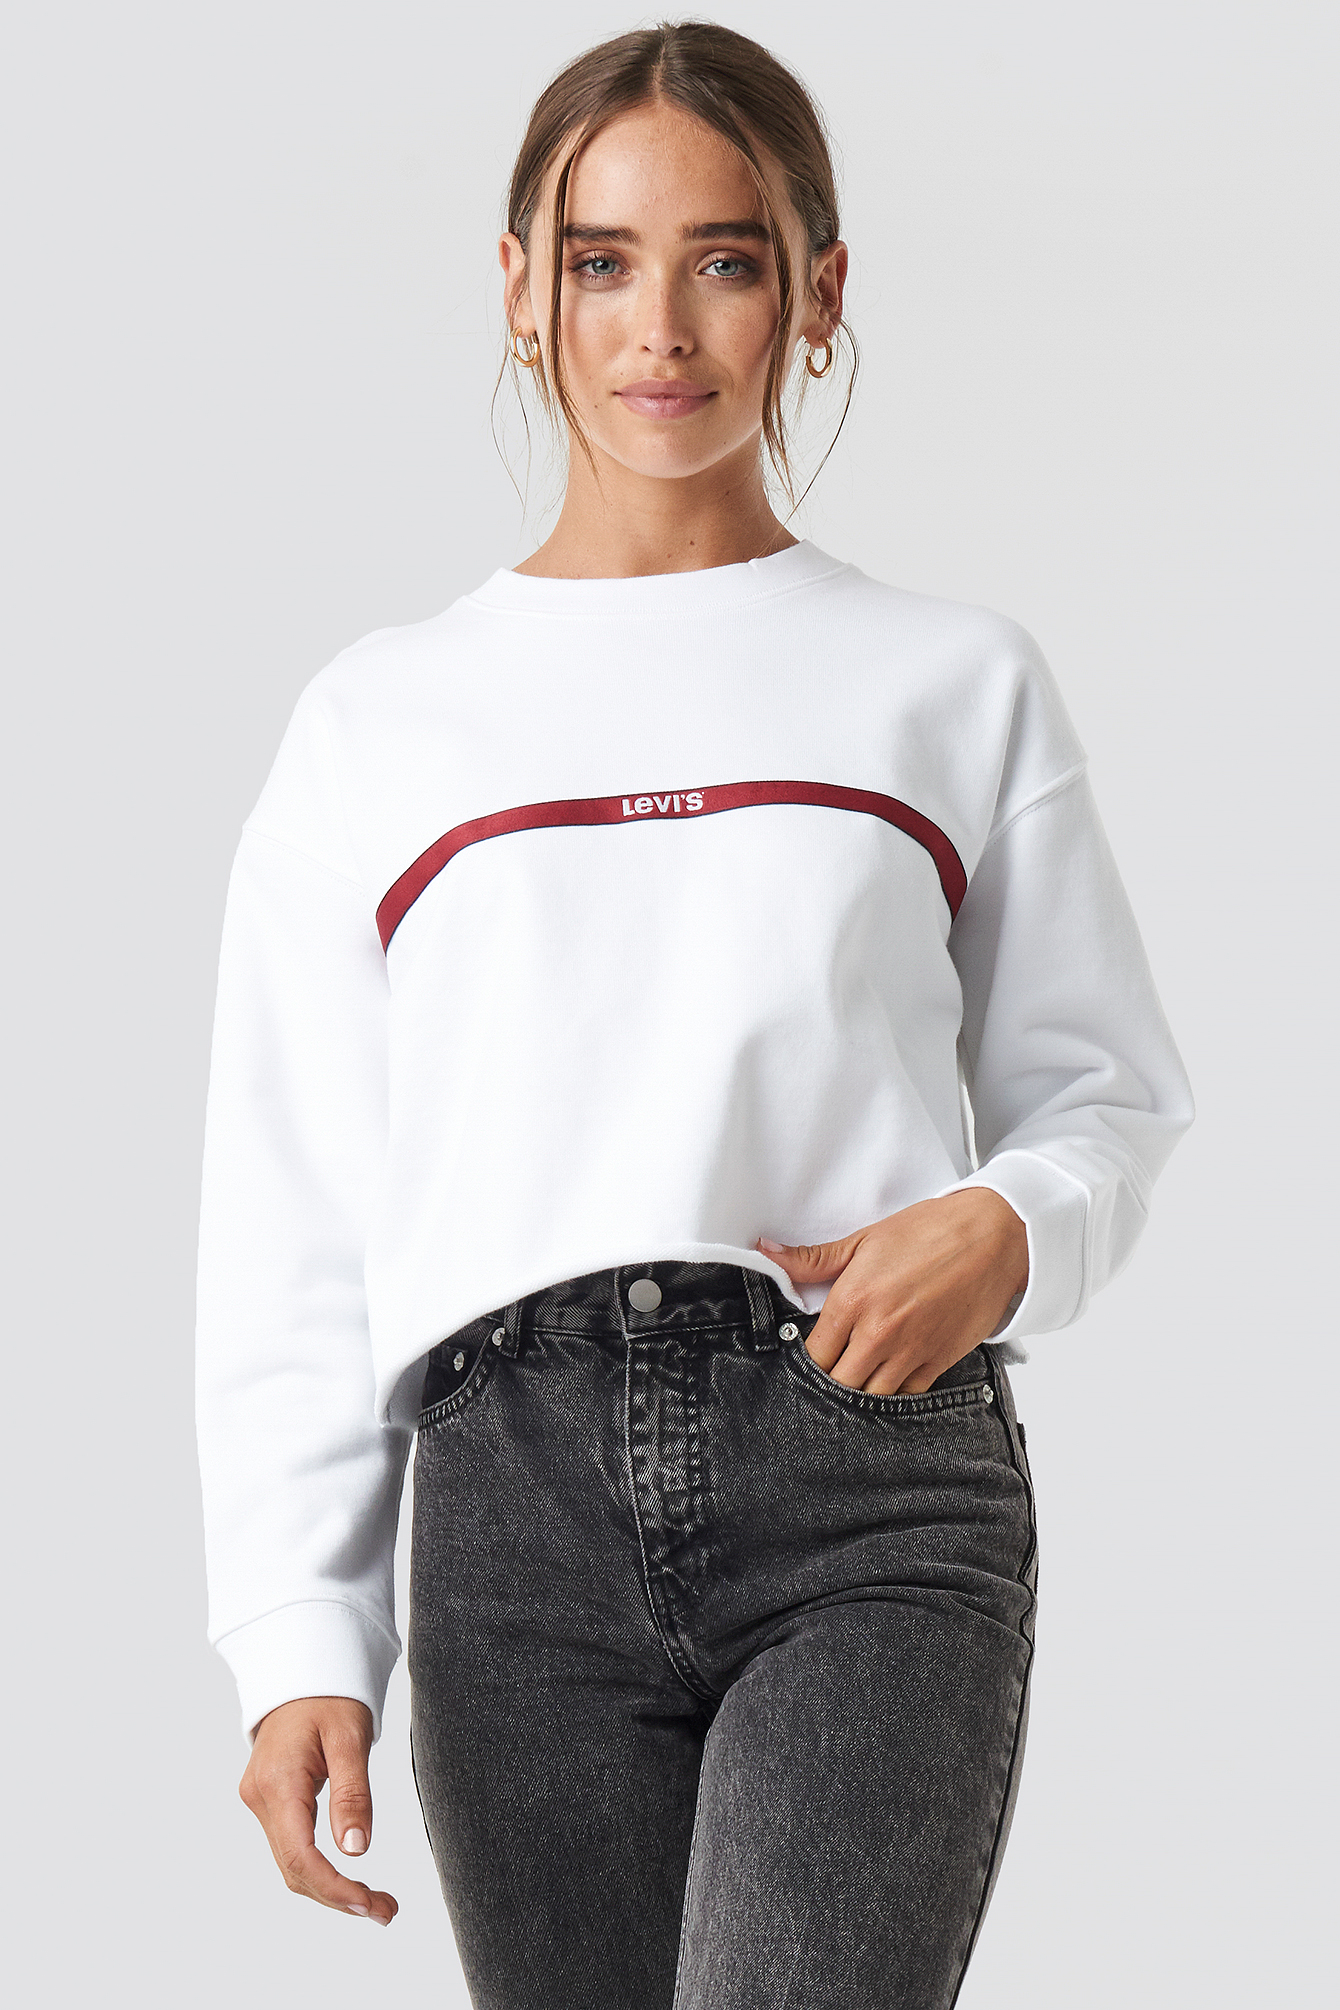 levi's -  Graphic Raw Cut Sweatshirt - White